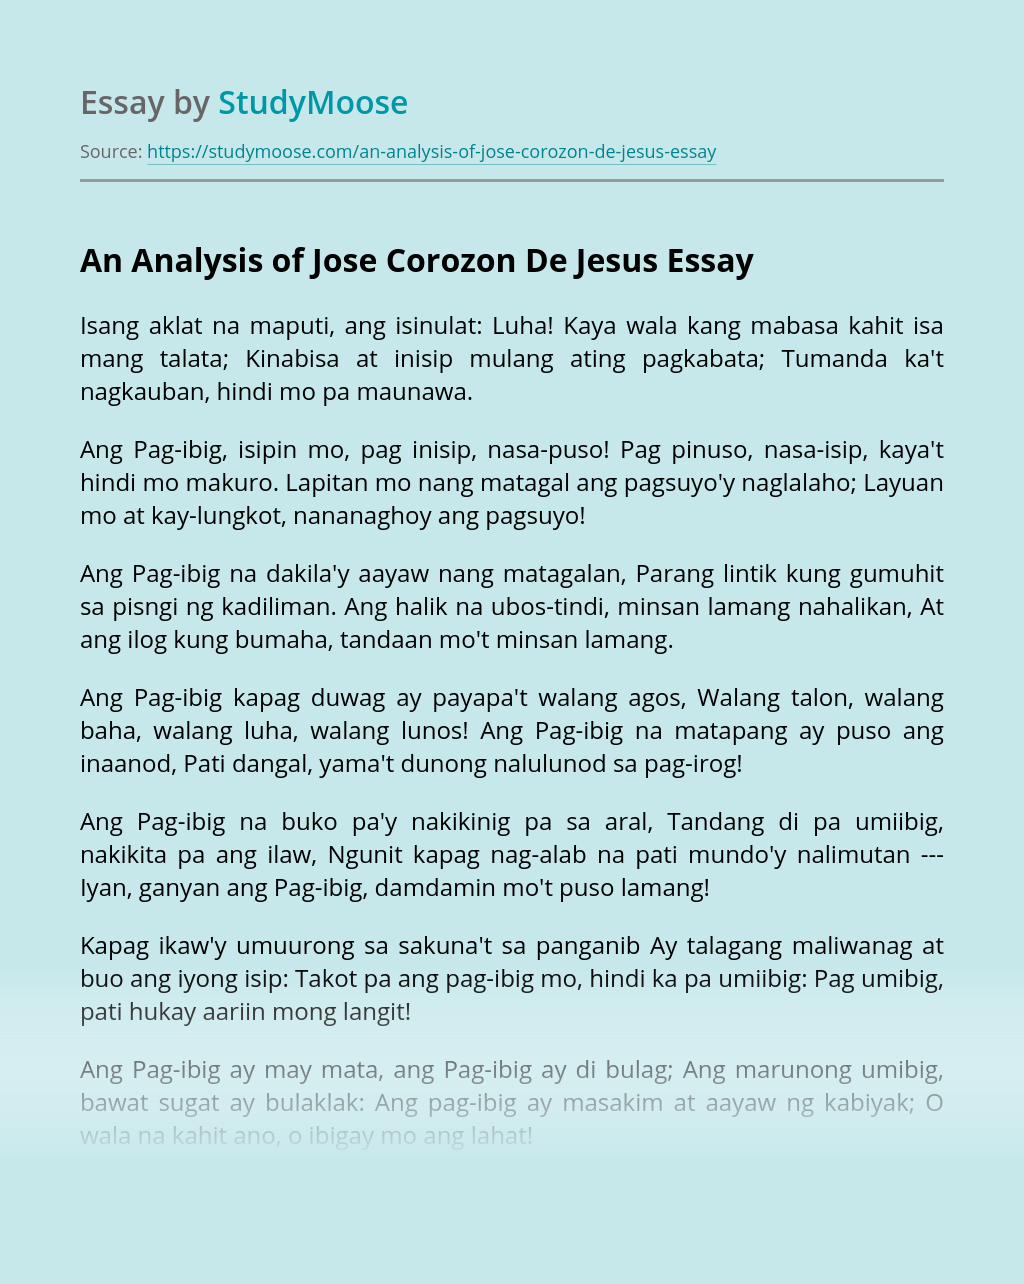 An Analysis of Jose Corozon De Jesus